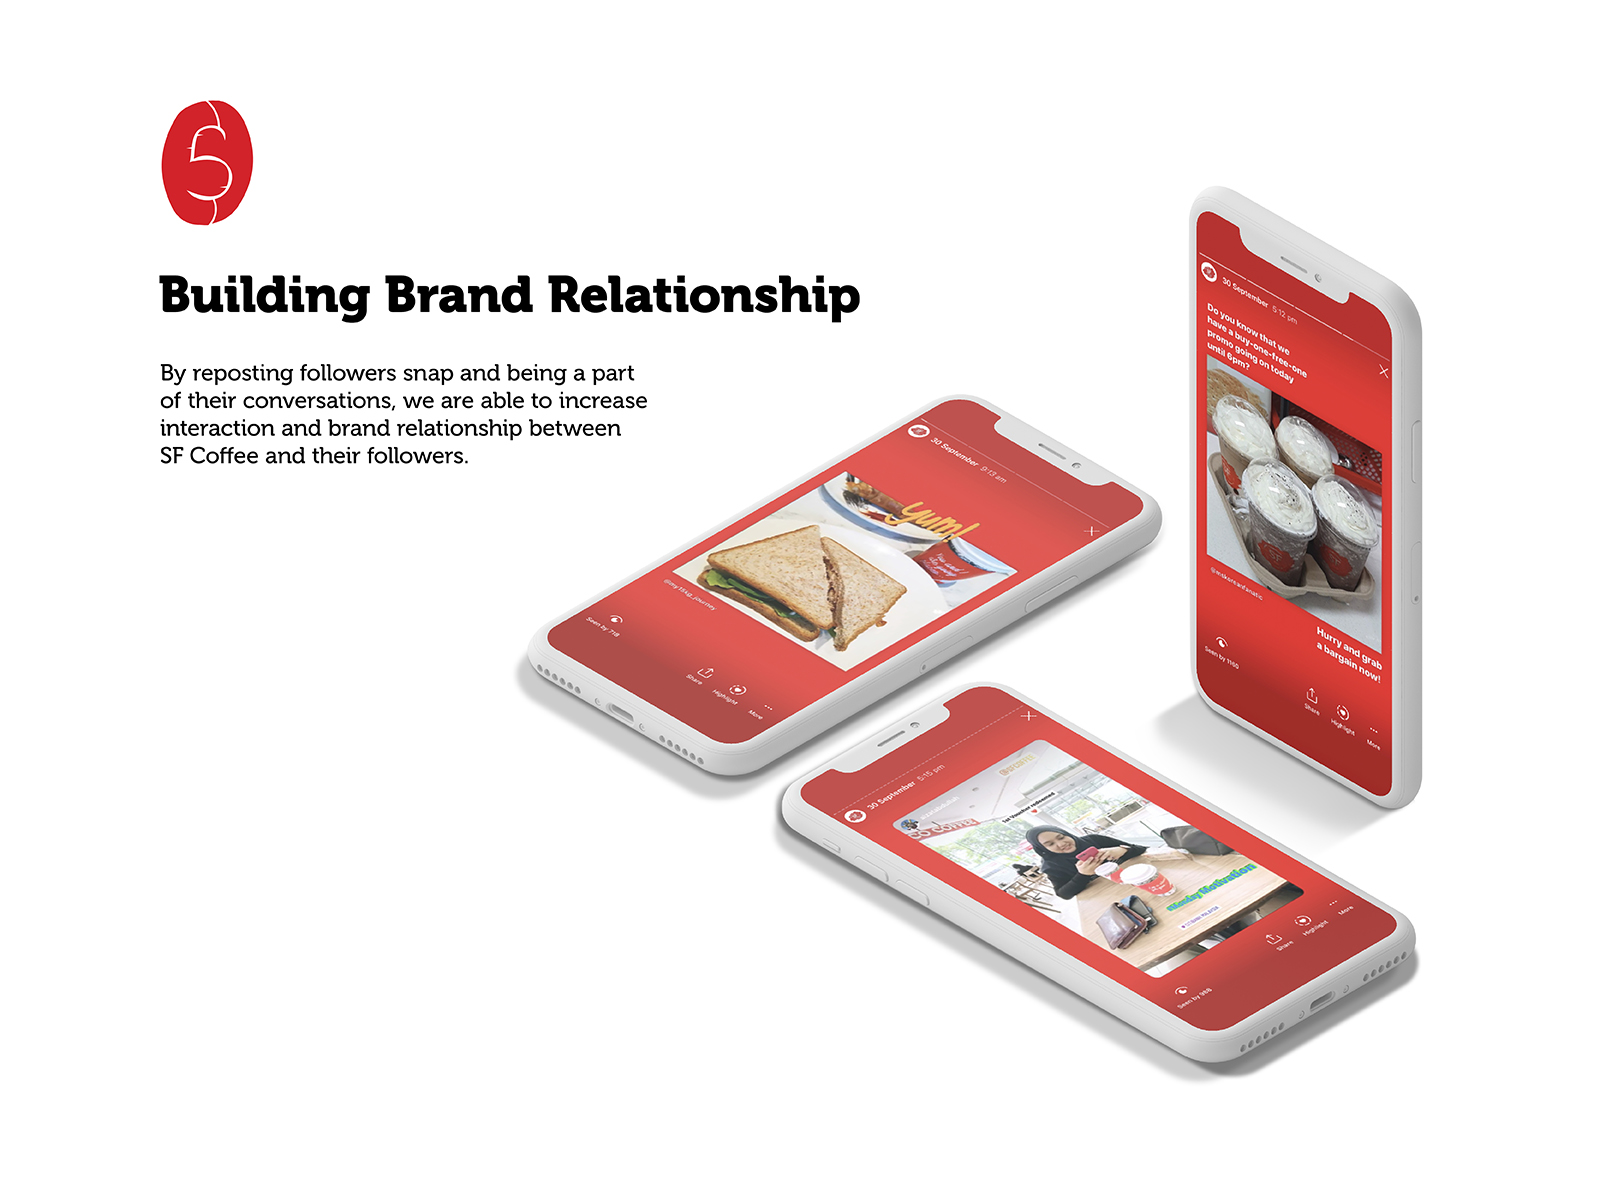 San Francisco Coffee social media management customer post and stories sharing to create bond with consumers with a specific style of red background for brand consistency